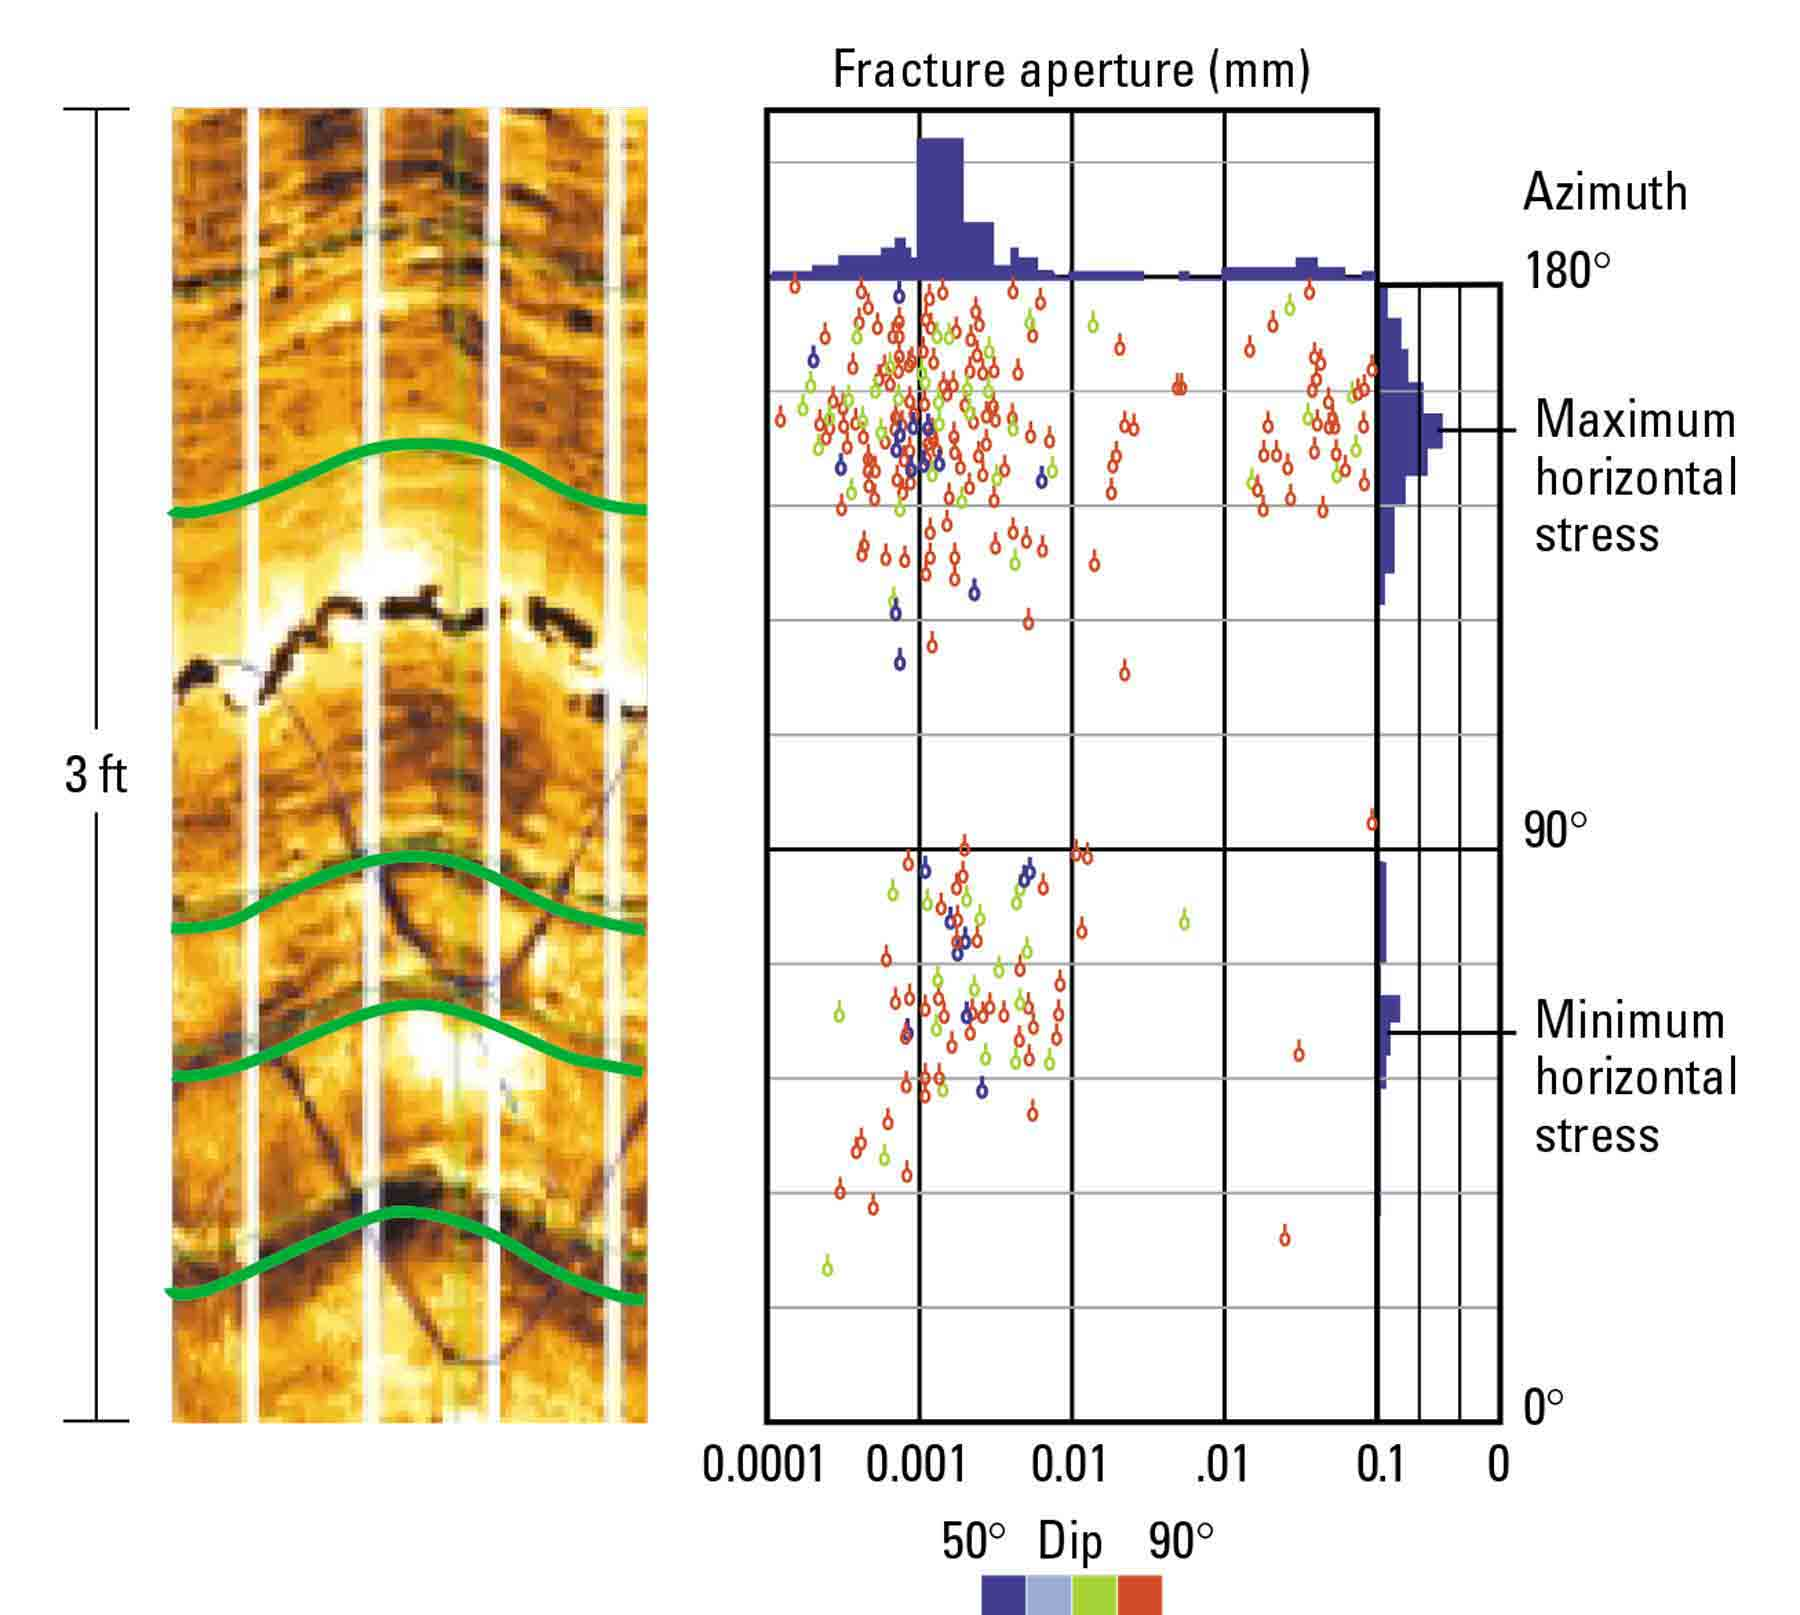 FMI data analysis identifies the maximum permeability direction in a fractured reservoir, which is important information for designing a completion for optimal production.